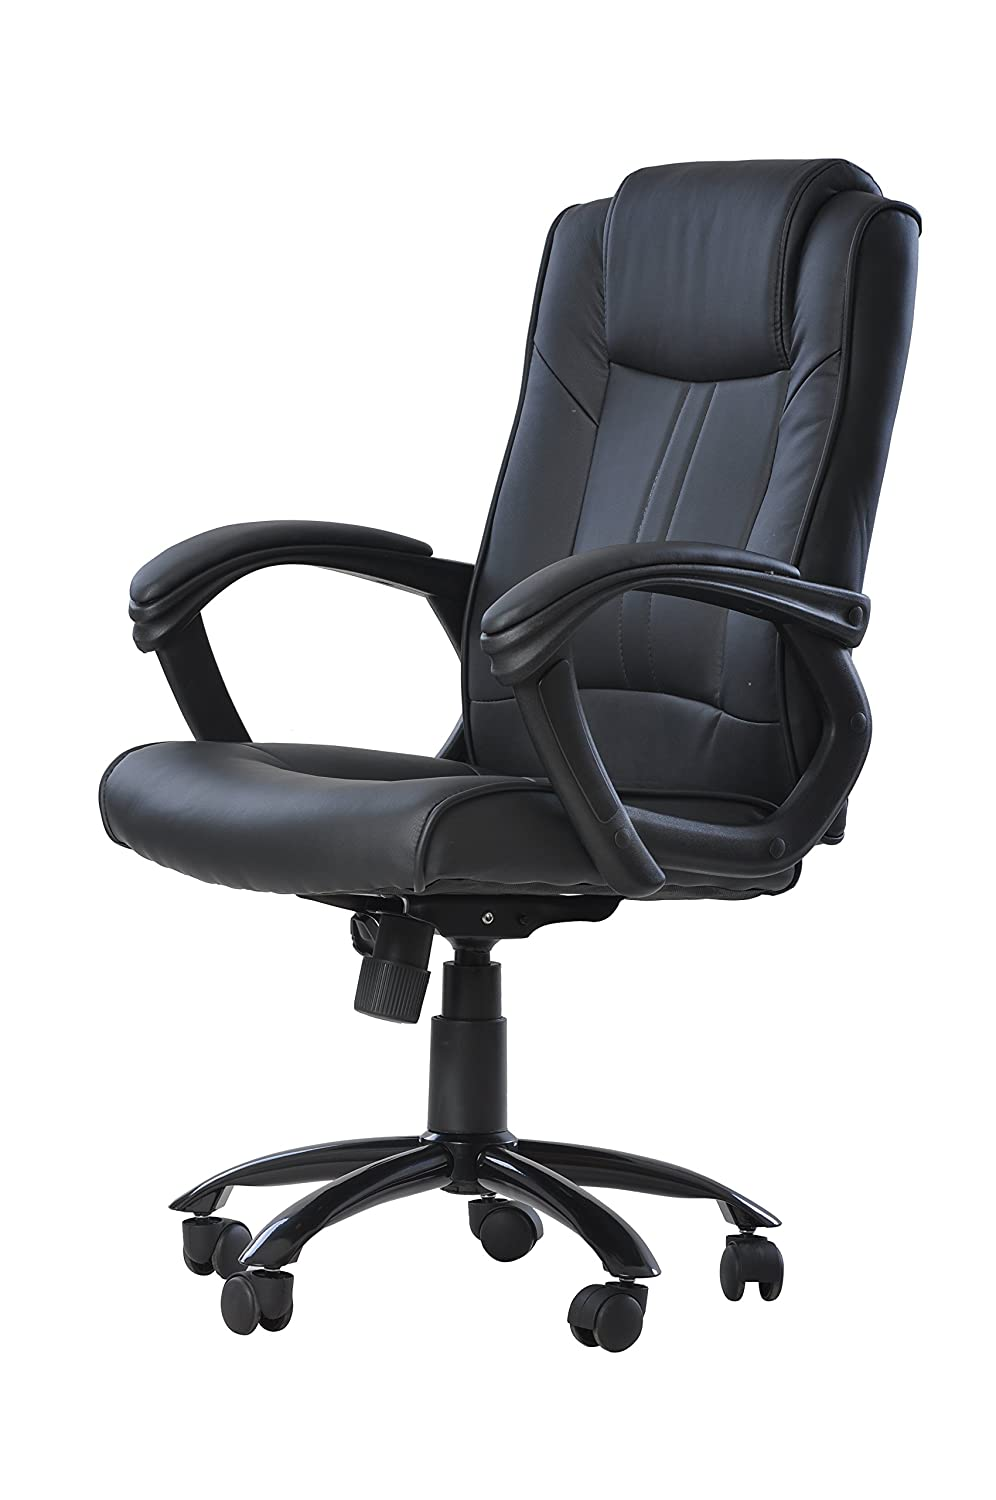 Best Cheap Office Chair for 2019  The Most Affordable